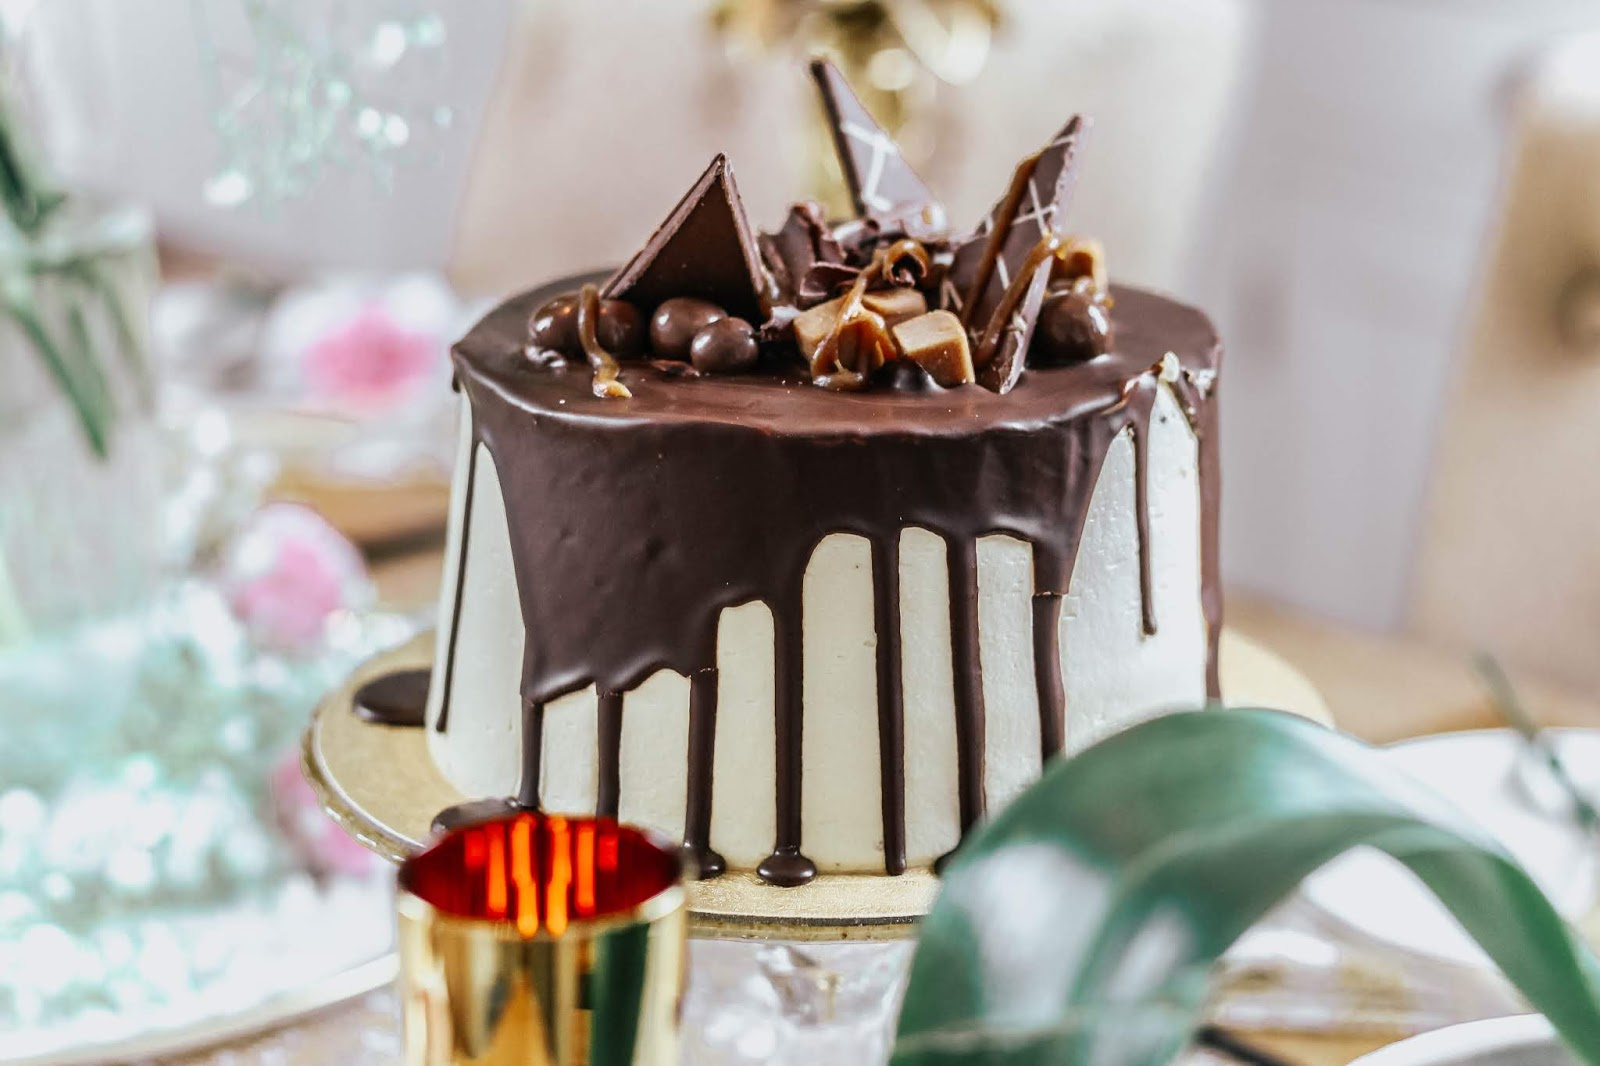 M&S Chocolate and Caramel Dribble Cake